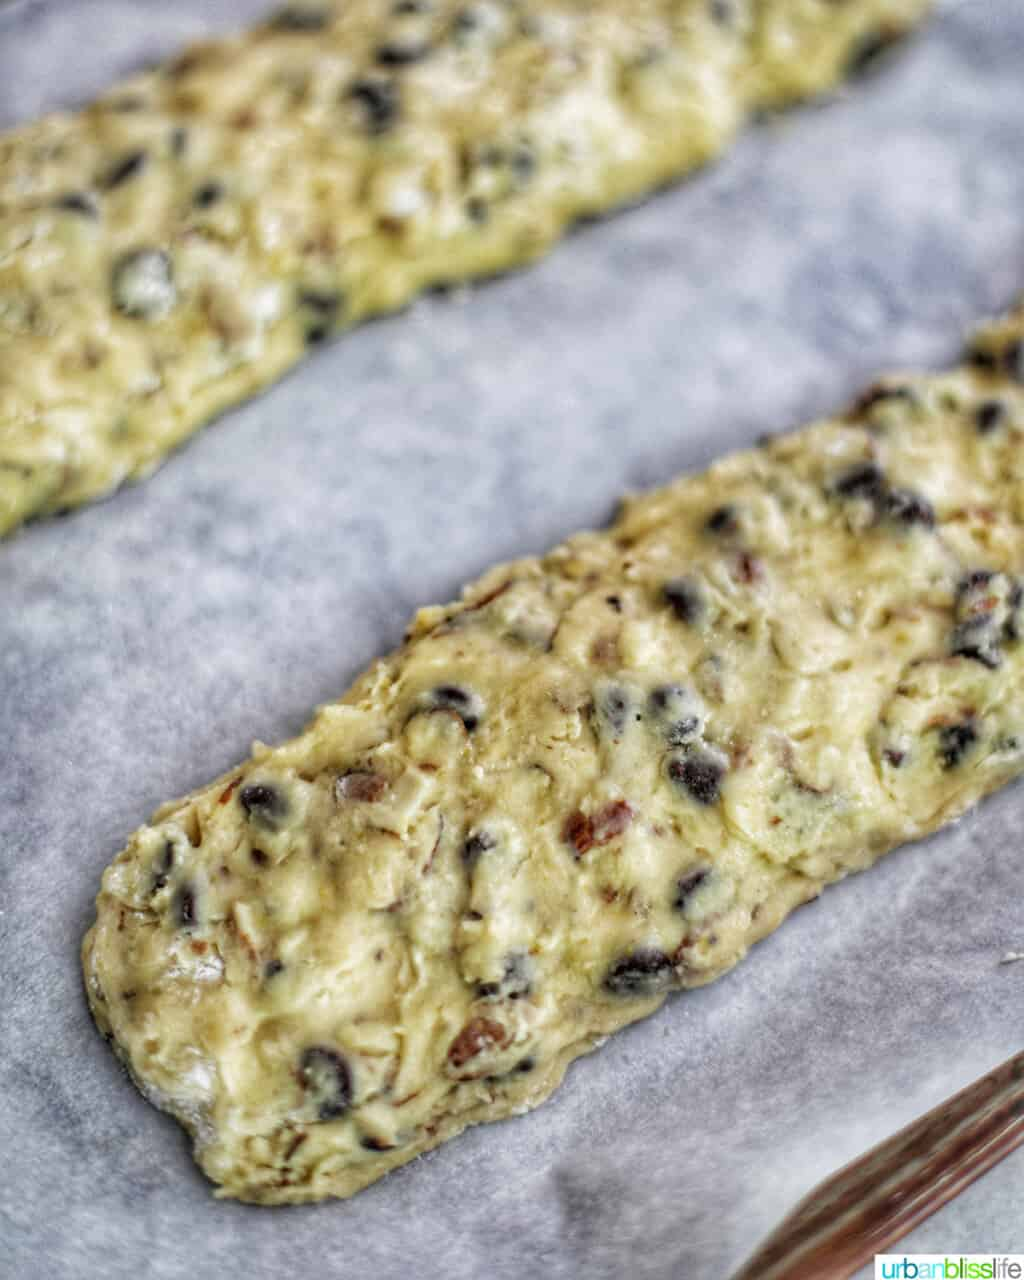 two dough logs for making chocolate chip almond biscotti